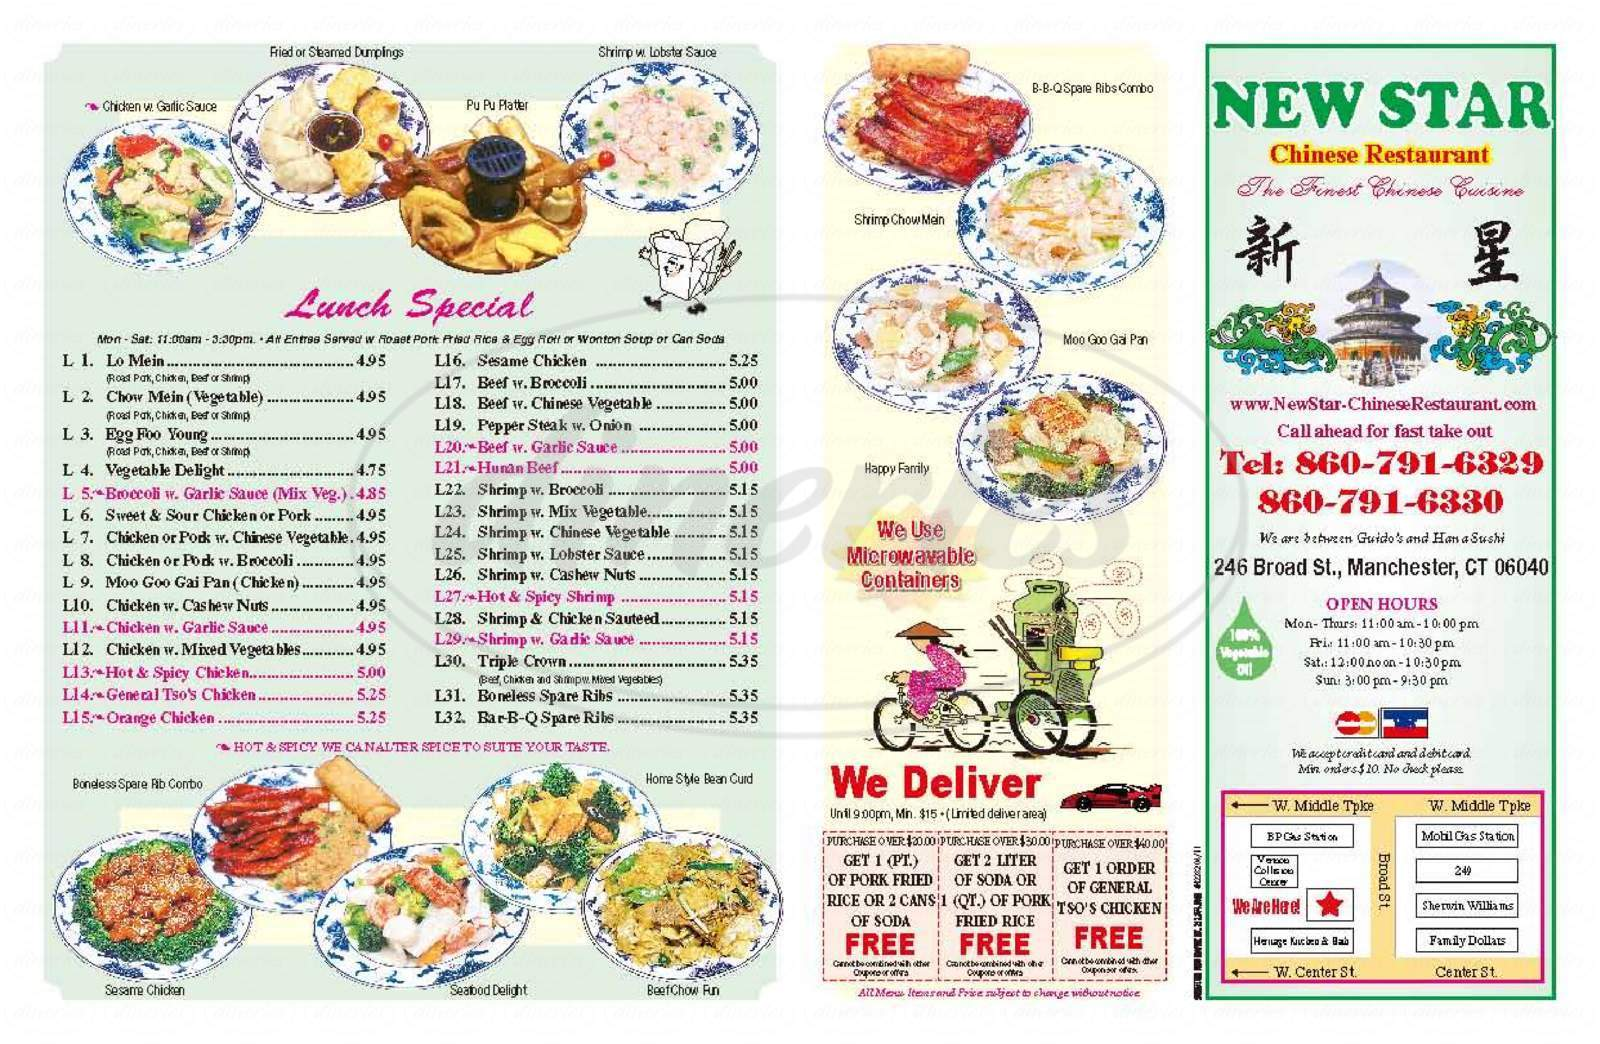 menu for New Star Chinese Restaurant